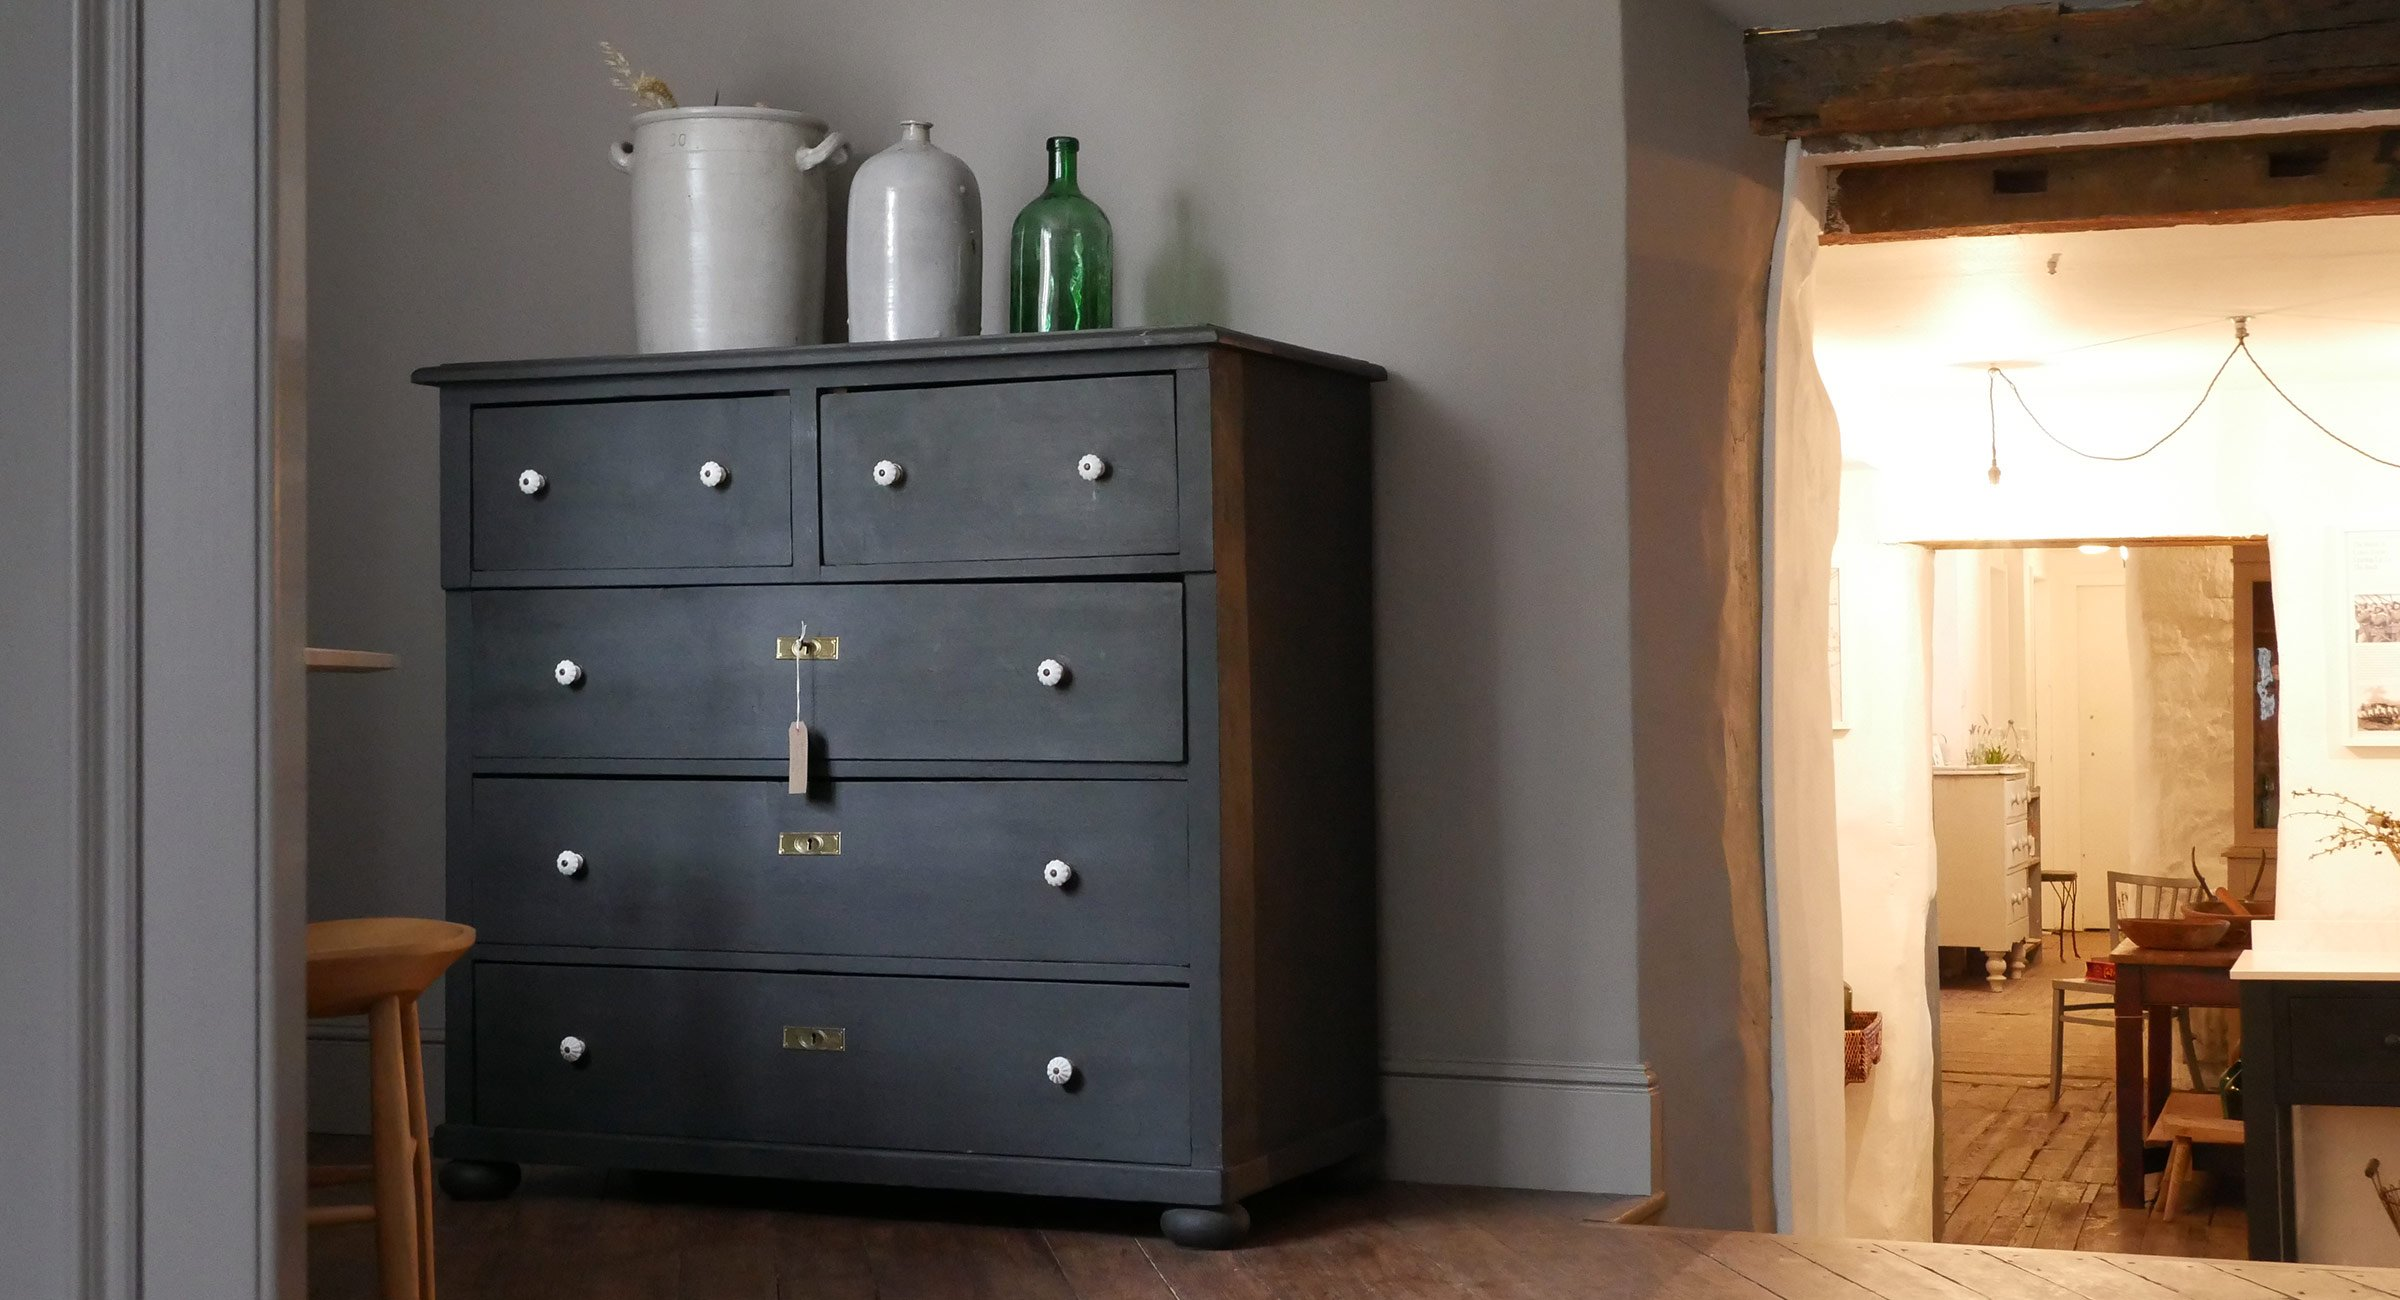 Cupboards, Cabinets & Drawers photo 2